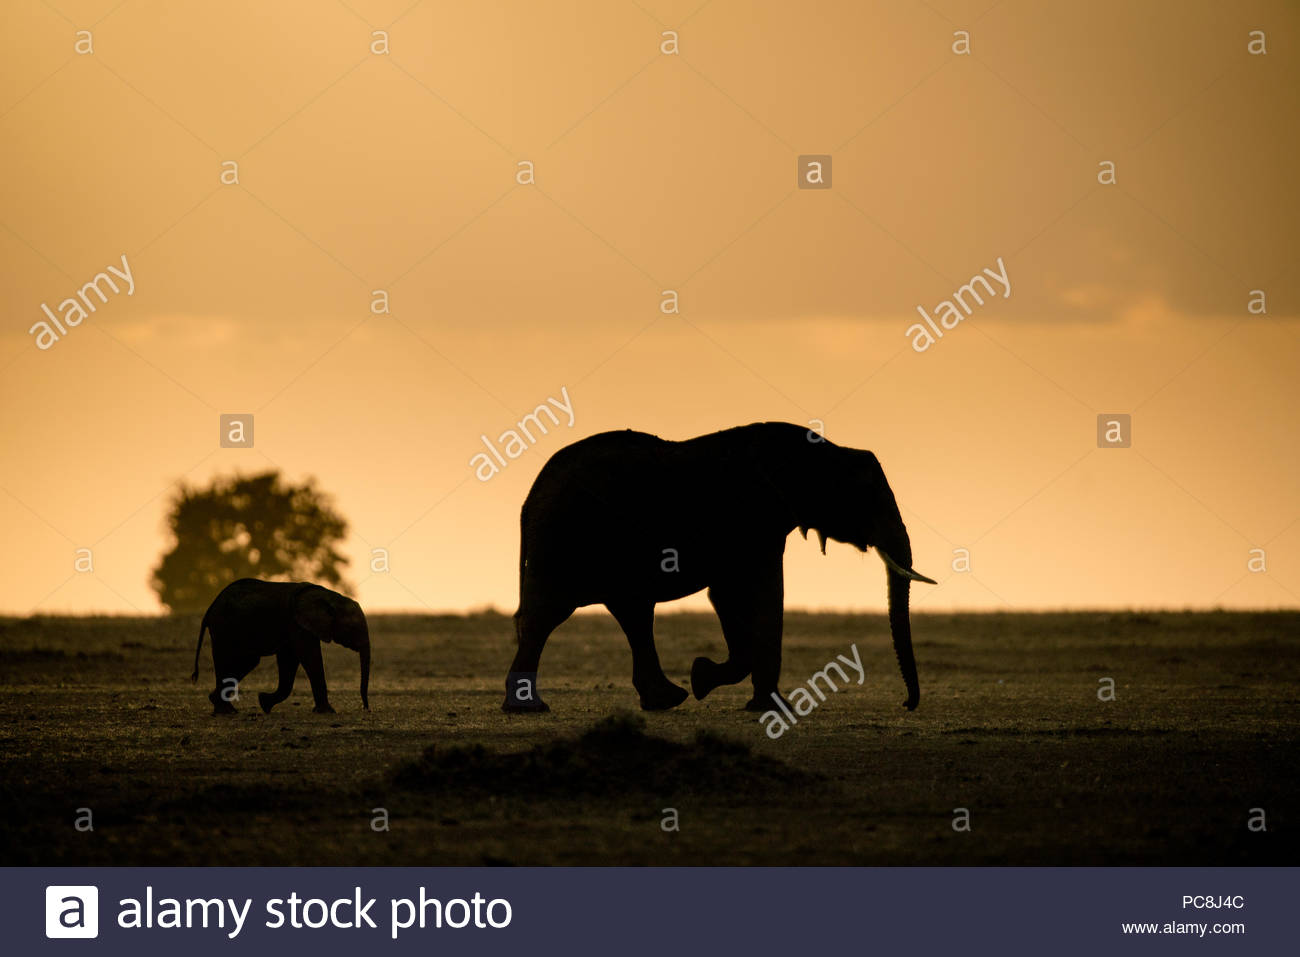 African elephant and her calf, Loxodonta africana, on horizon at sunset. - Stock Image